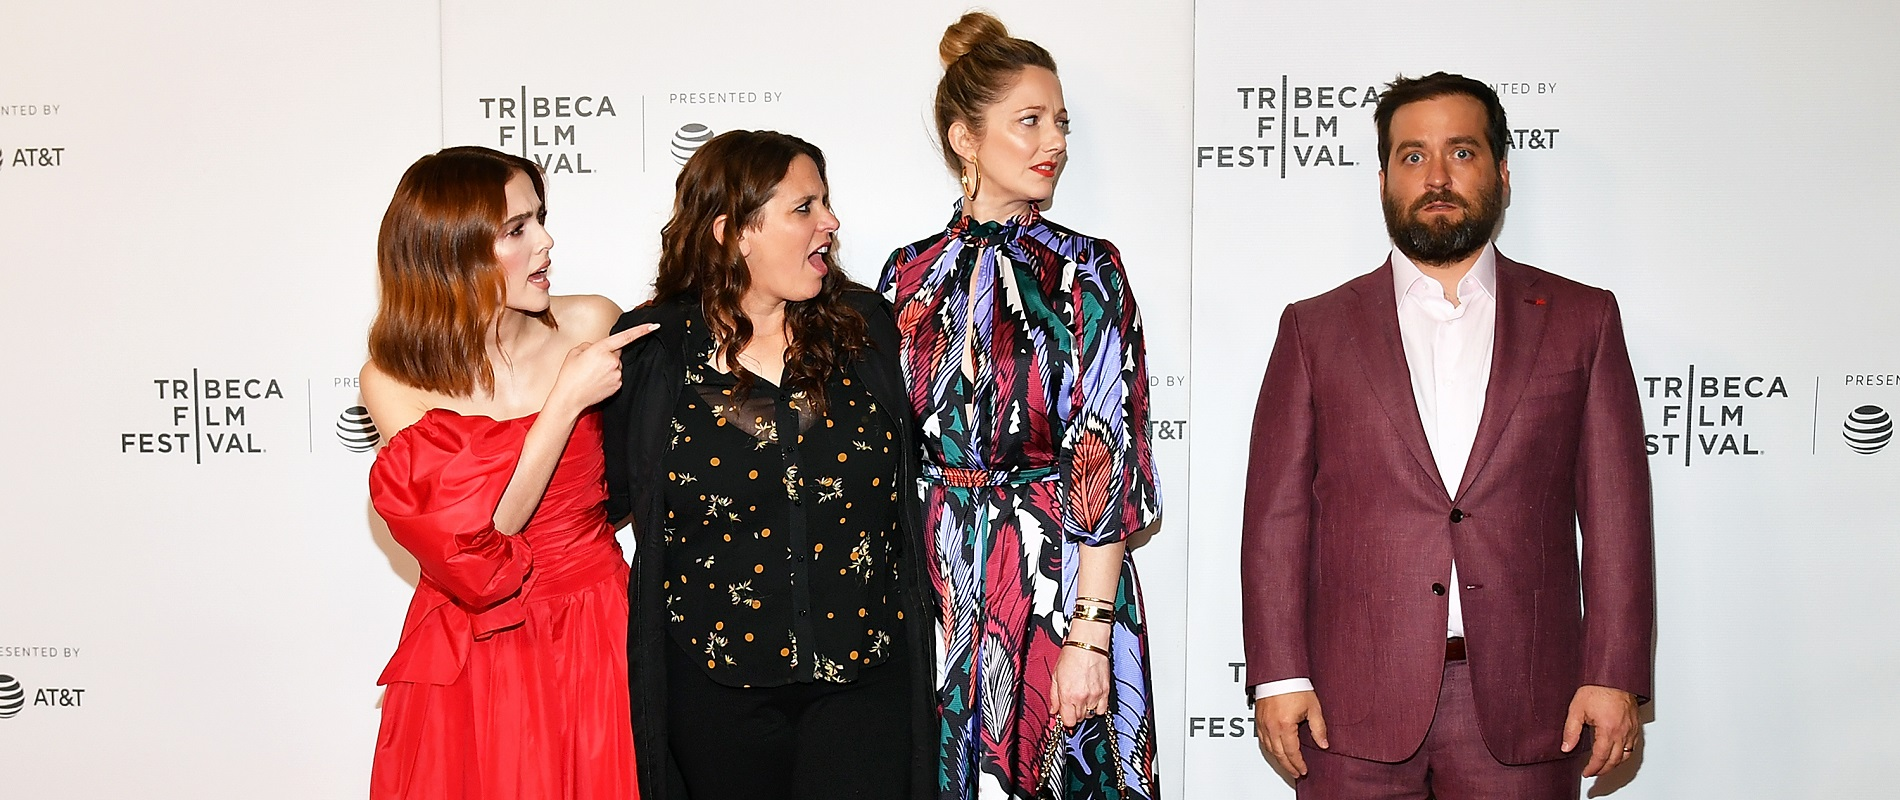 'Buffaloed' star and producer Zoey Deutch, director Tanya Wexler, star Judy Greer and writer and Lockport native Brian Sacca. (Photo by Slaven Vlasic/Getty Images for Tribeca Film Festival)